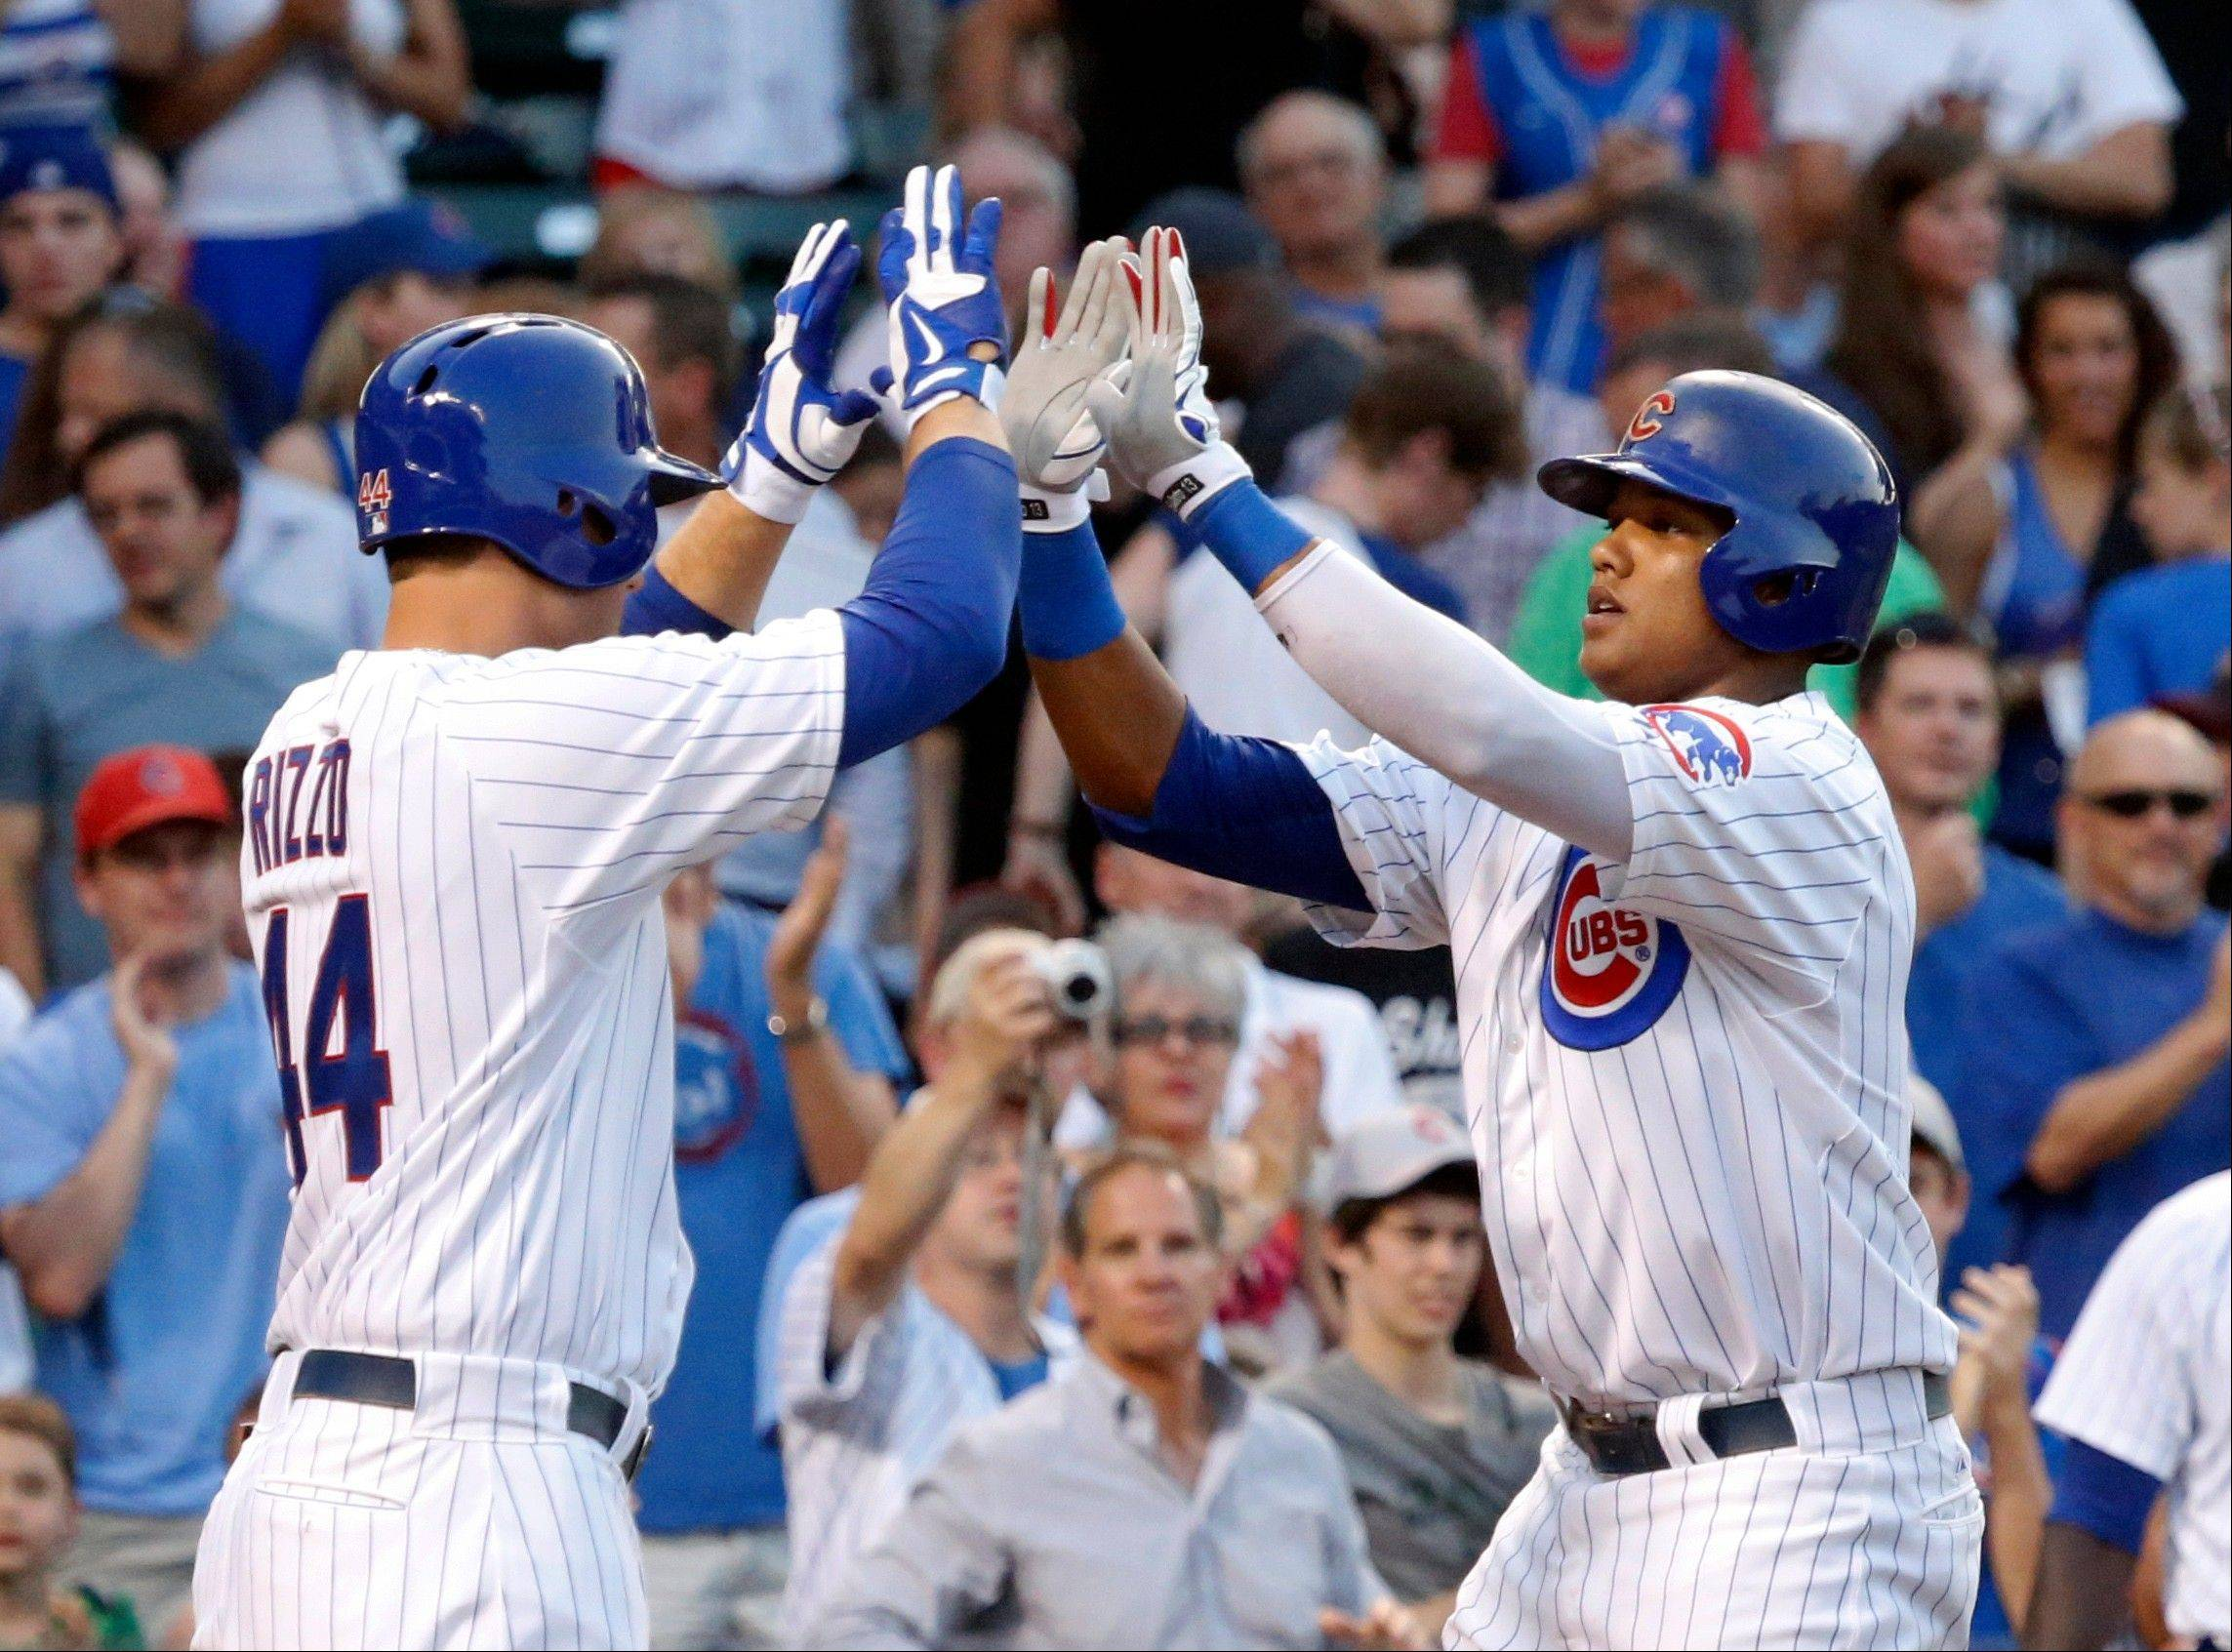 After their regression this season, the next Cubs manager must find a way to get more production from shortstop Starlin Castro, right, and first baseman Anthony Rizzo.